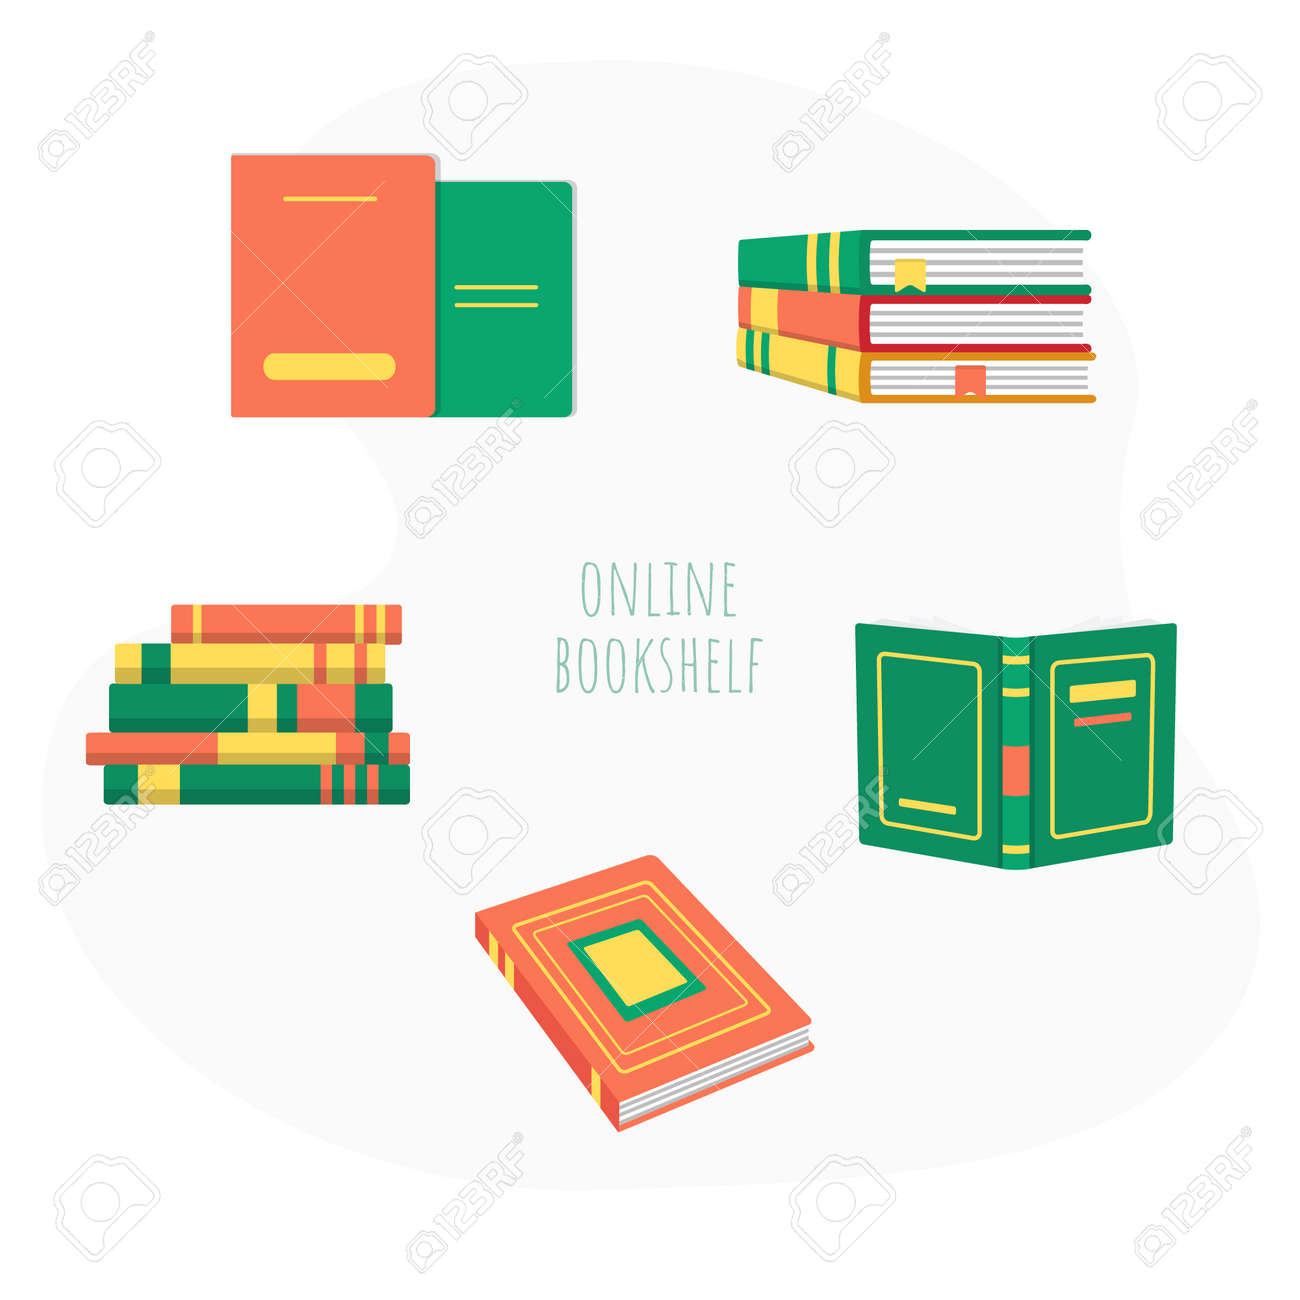 Pile of book education material and literature set - 169164792